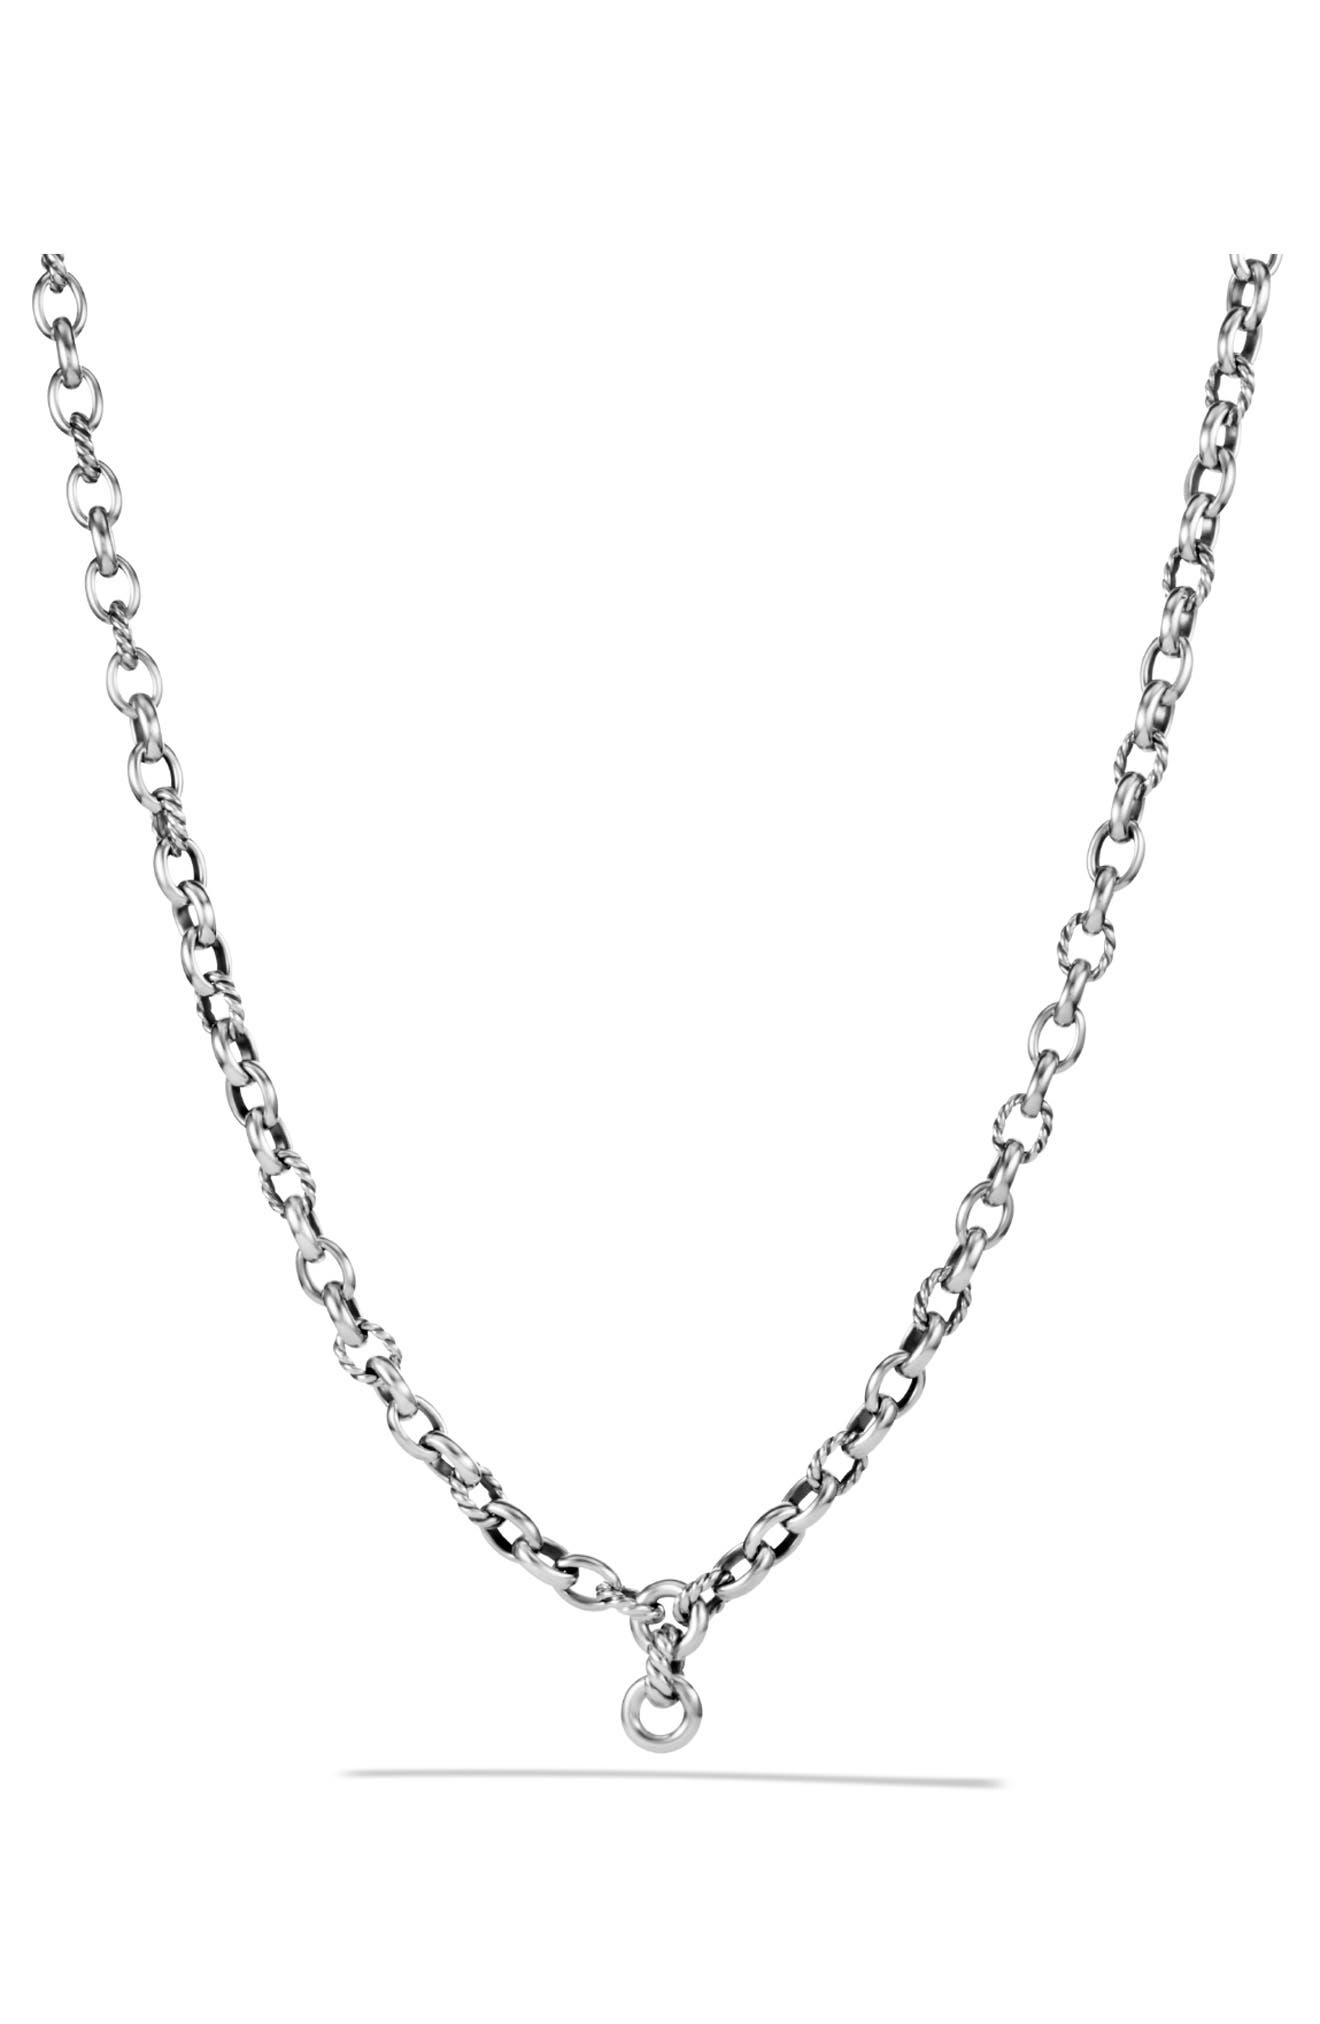 'Chain' Oval Link Chain Necklace,                             Alternate thumbnail 2, color,                             SILVER